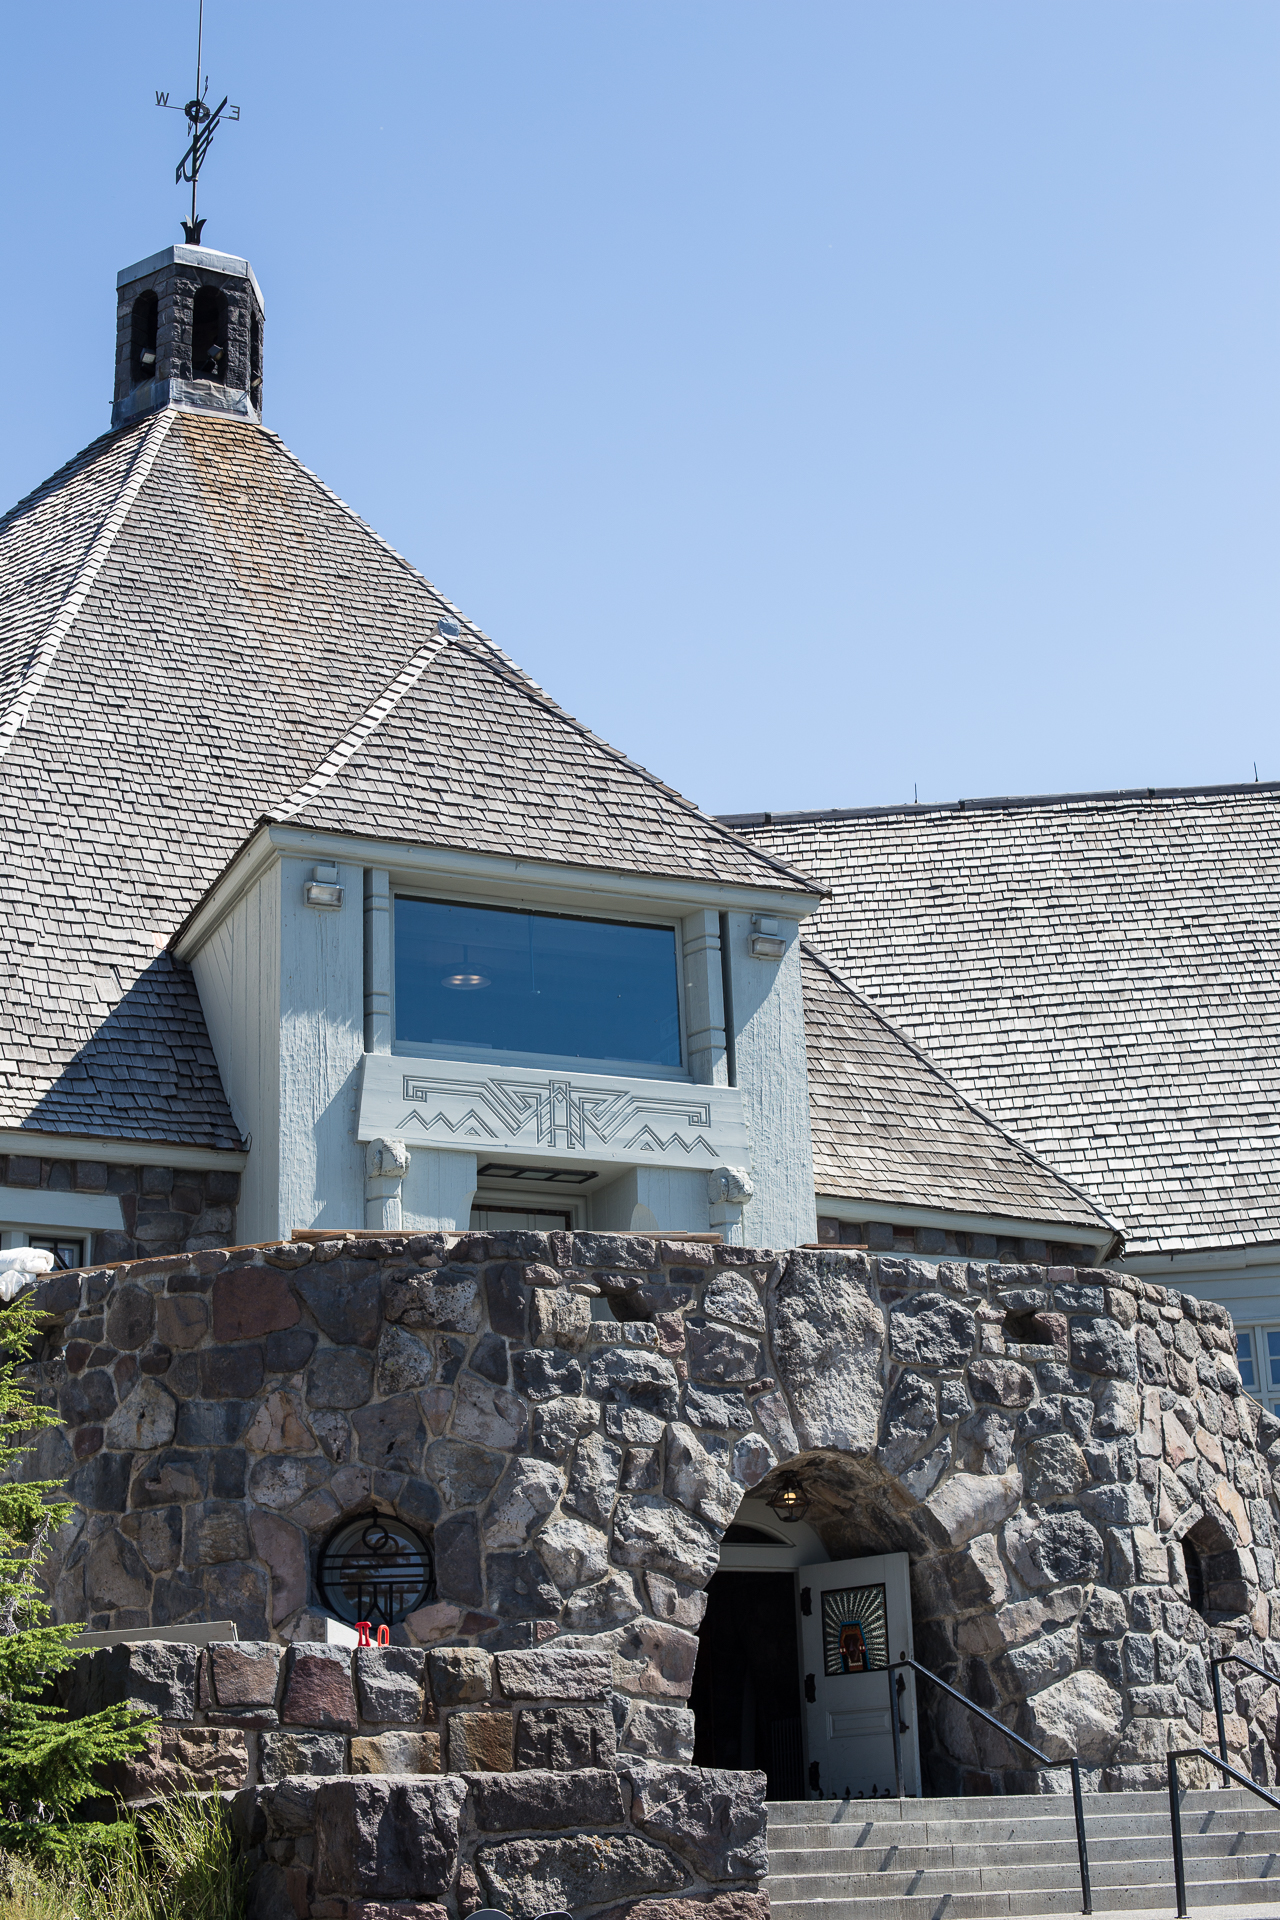 The front entrance to Timberline Lodge